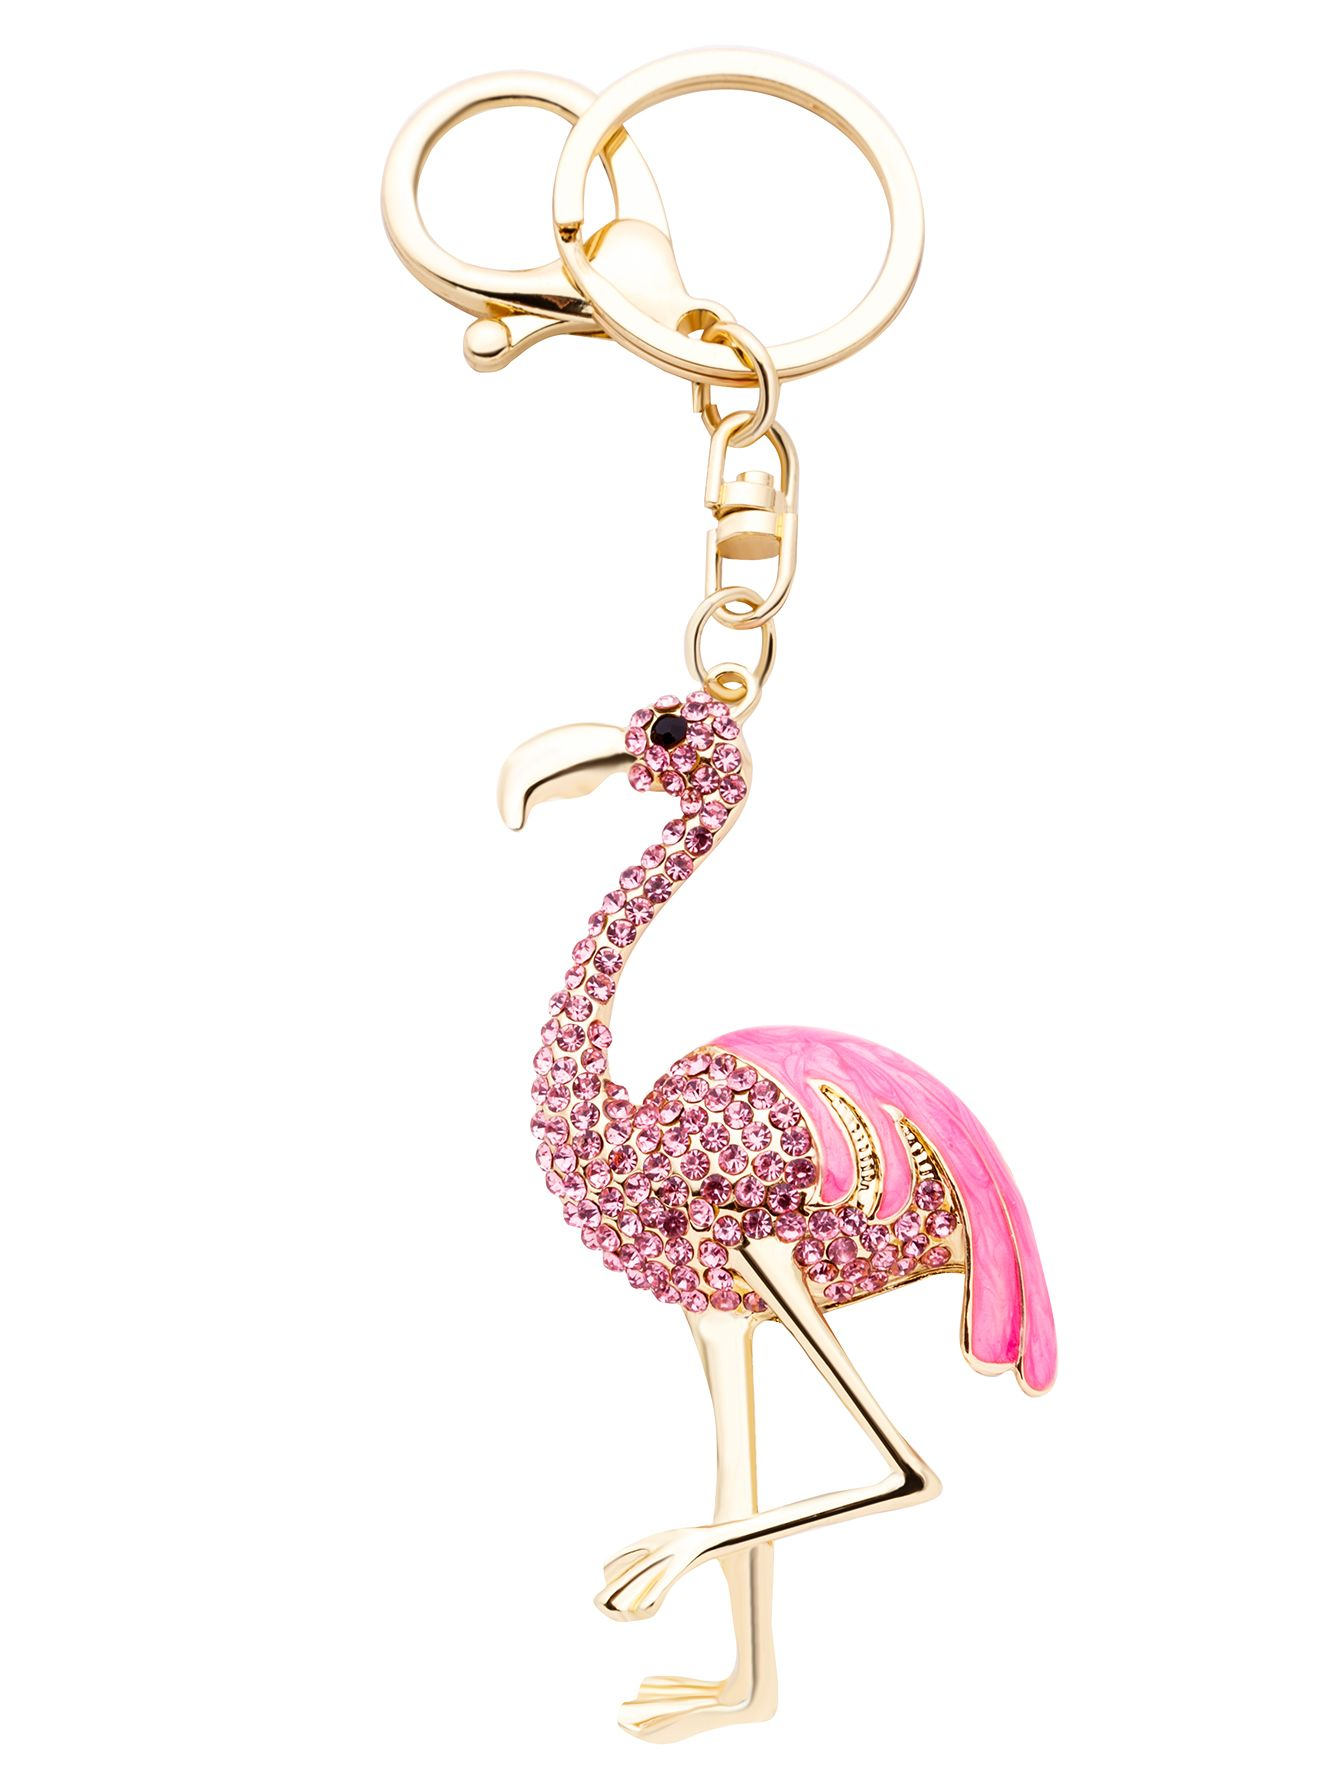 Pink Flamingo Rhinestone Encrusted Keychain Online Shein Offers More To Fit Your Fashionable Needs